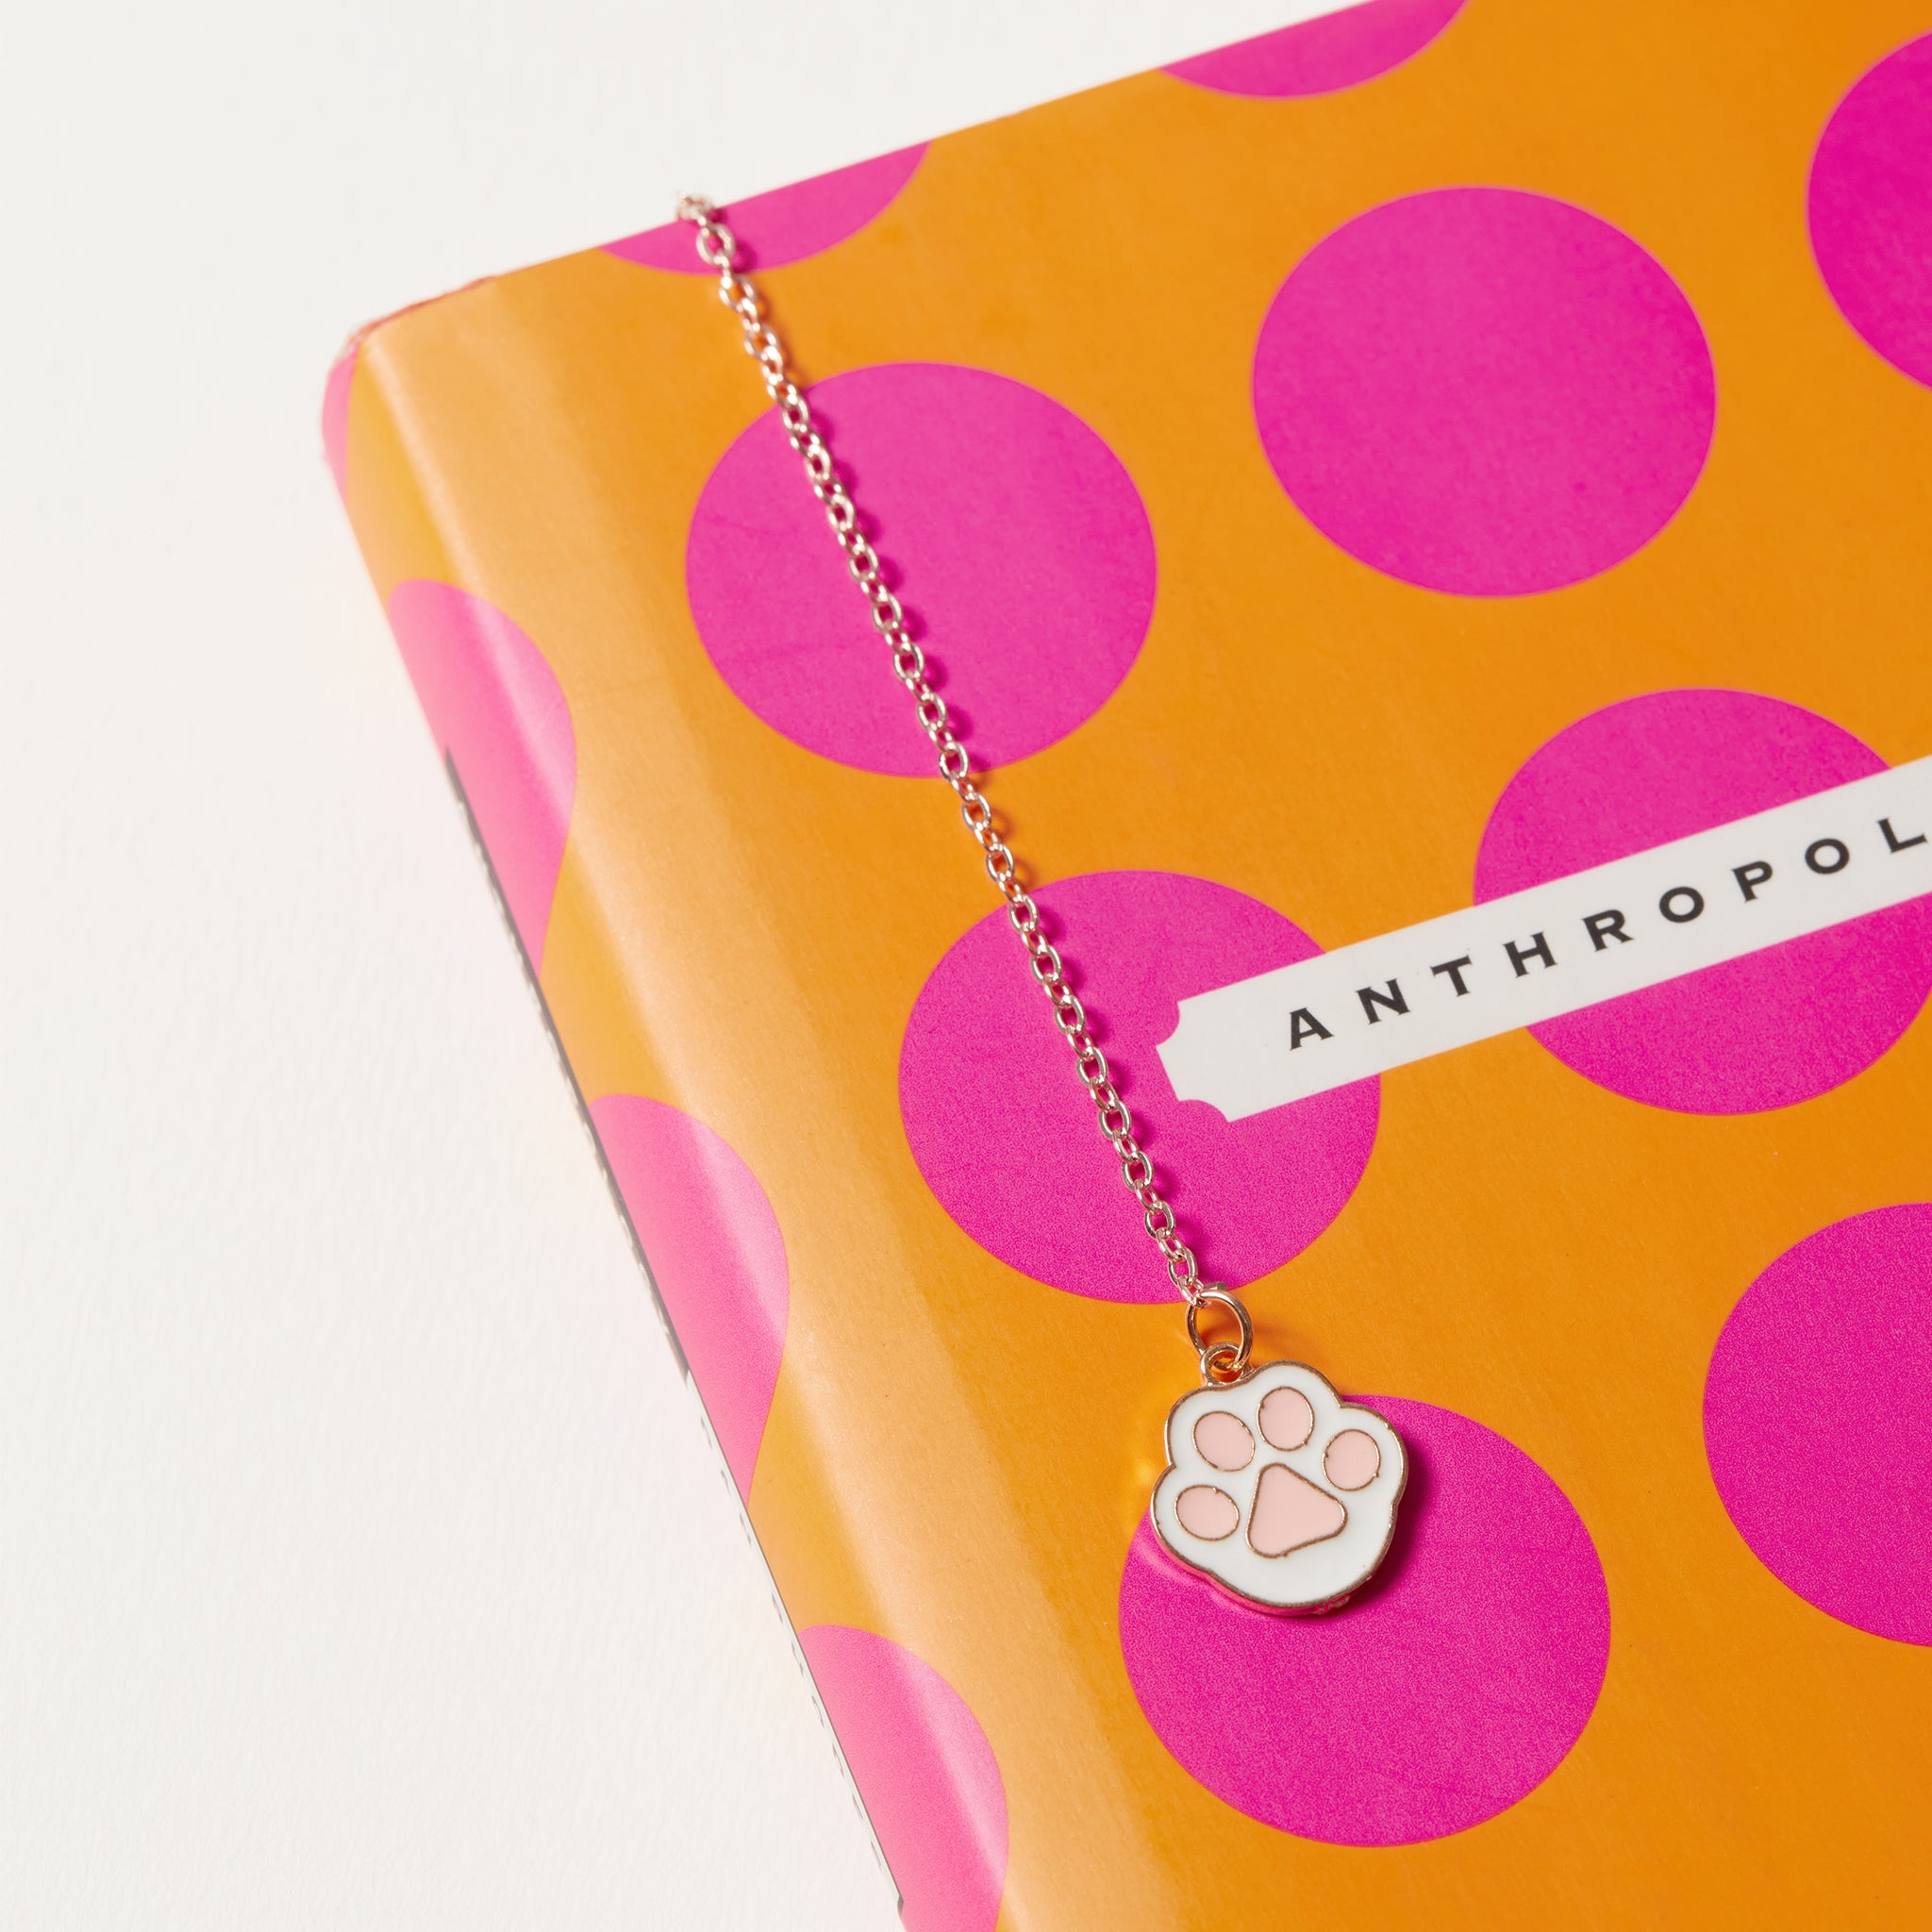 Enamel cat paw charm and book cover detail image